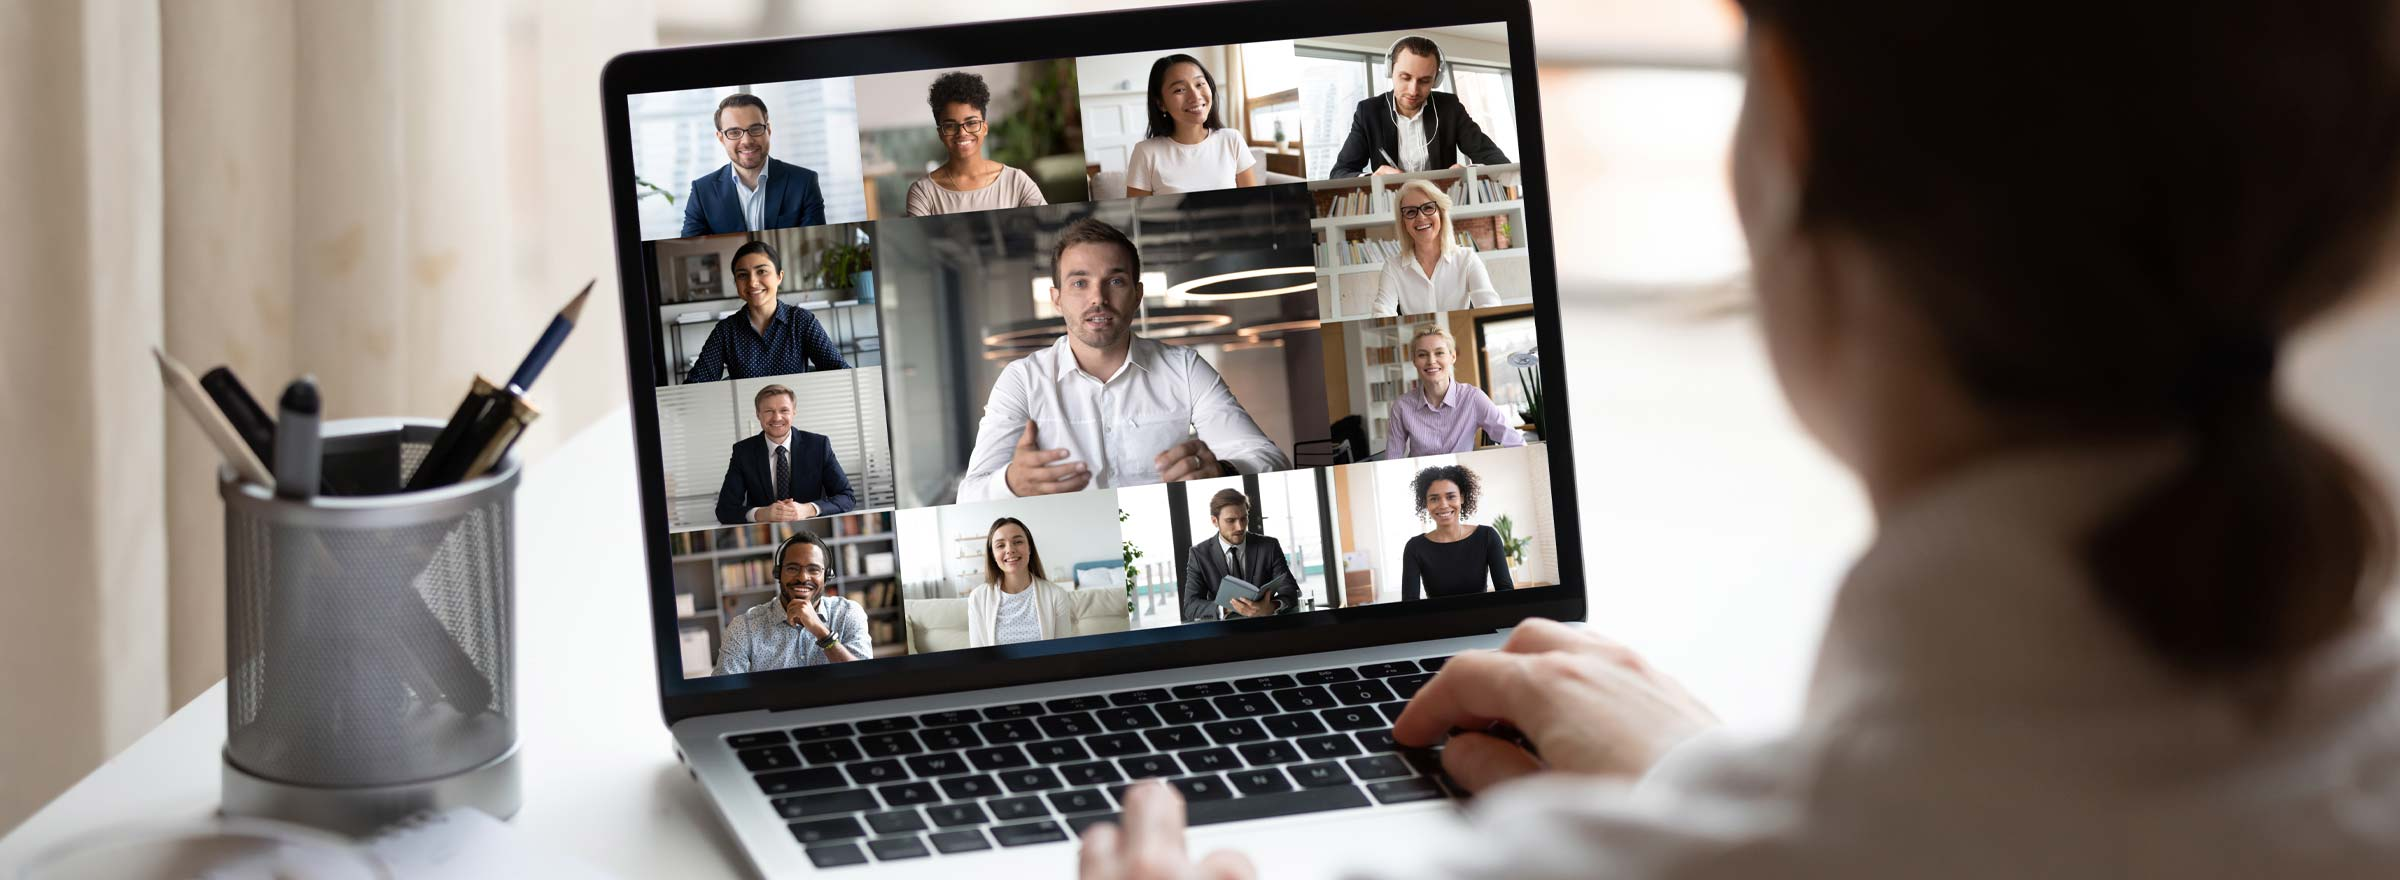 woman having an online video conference with 12 other people